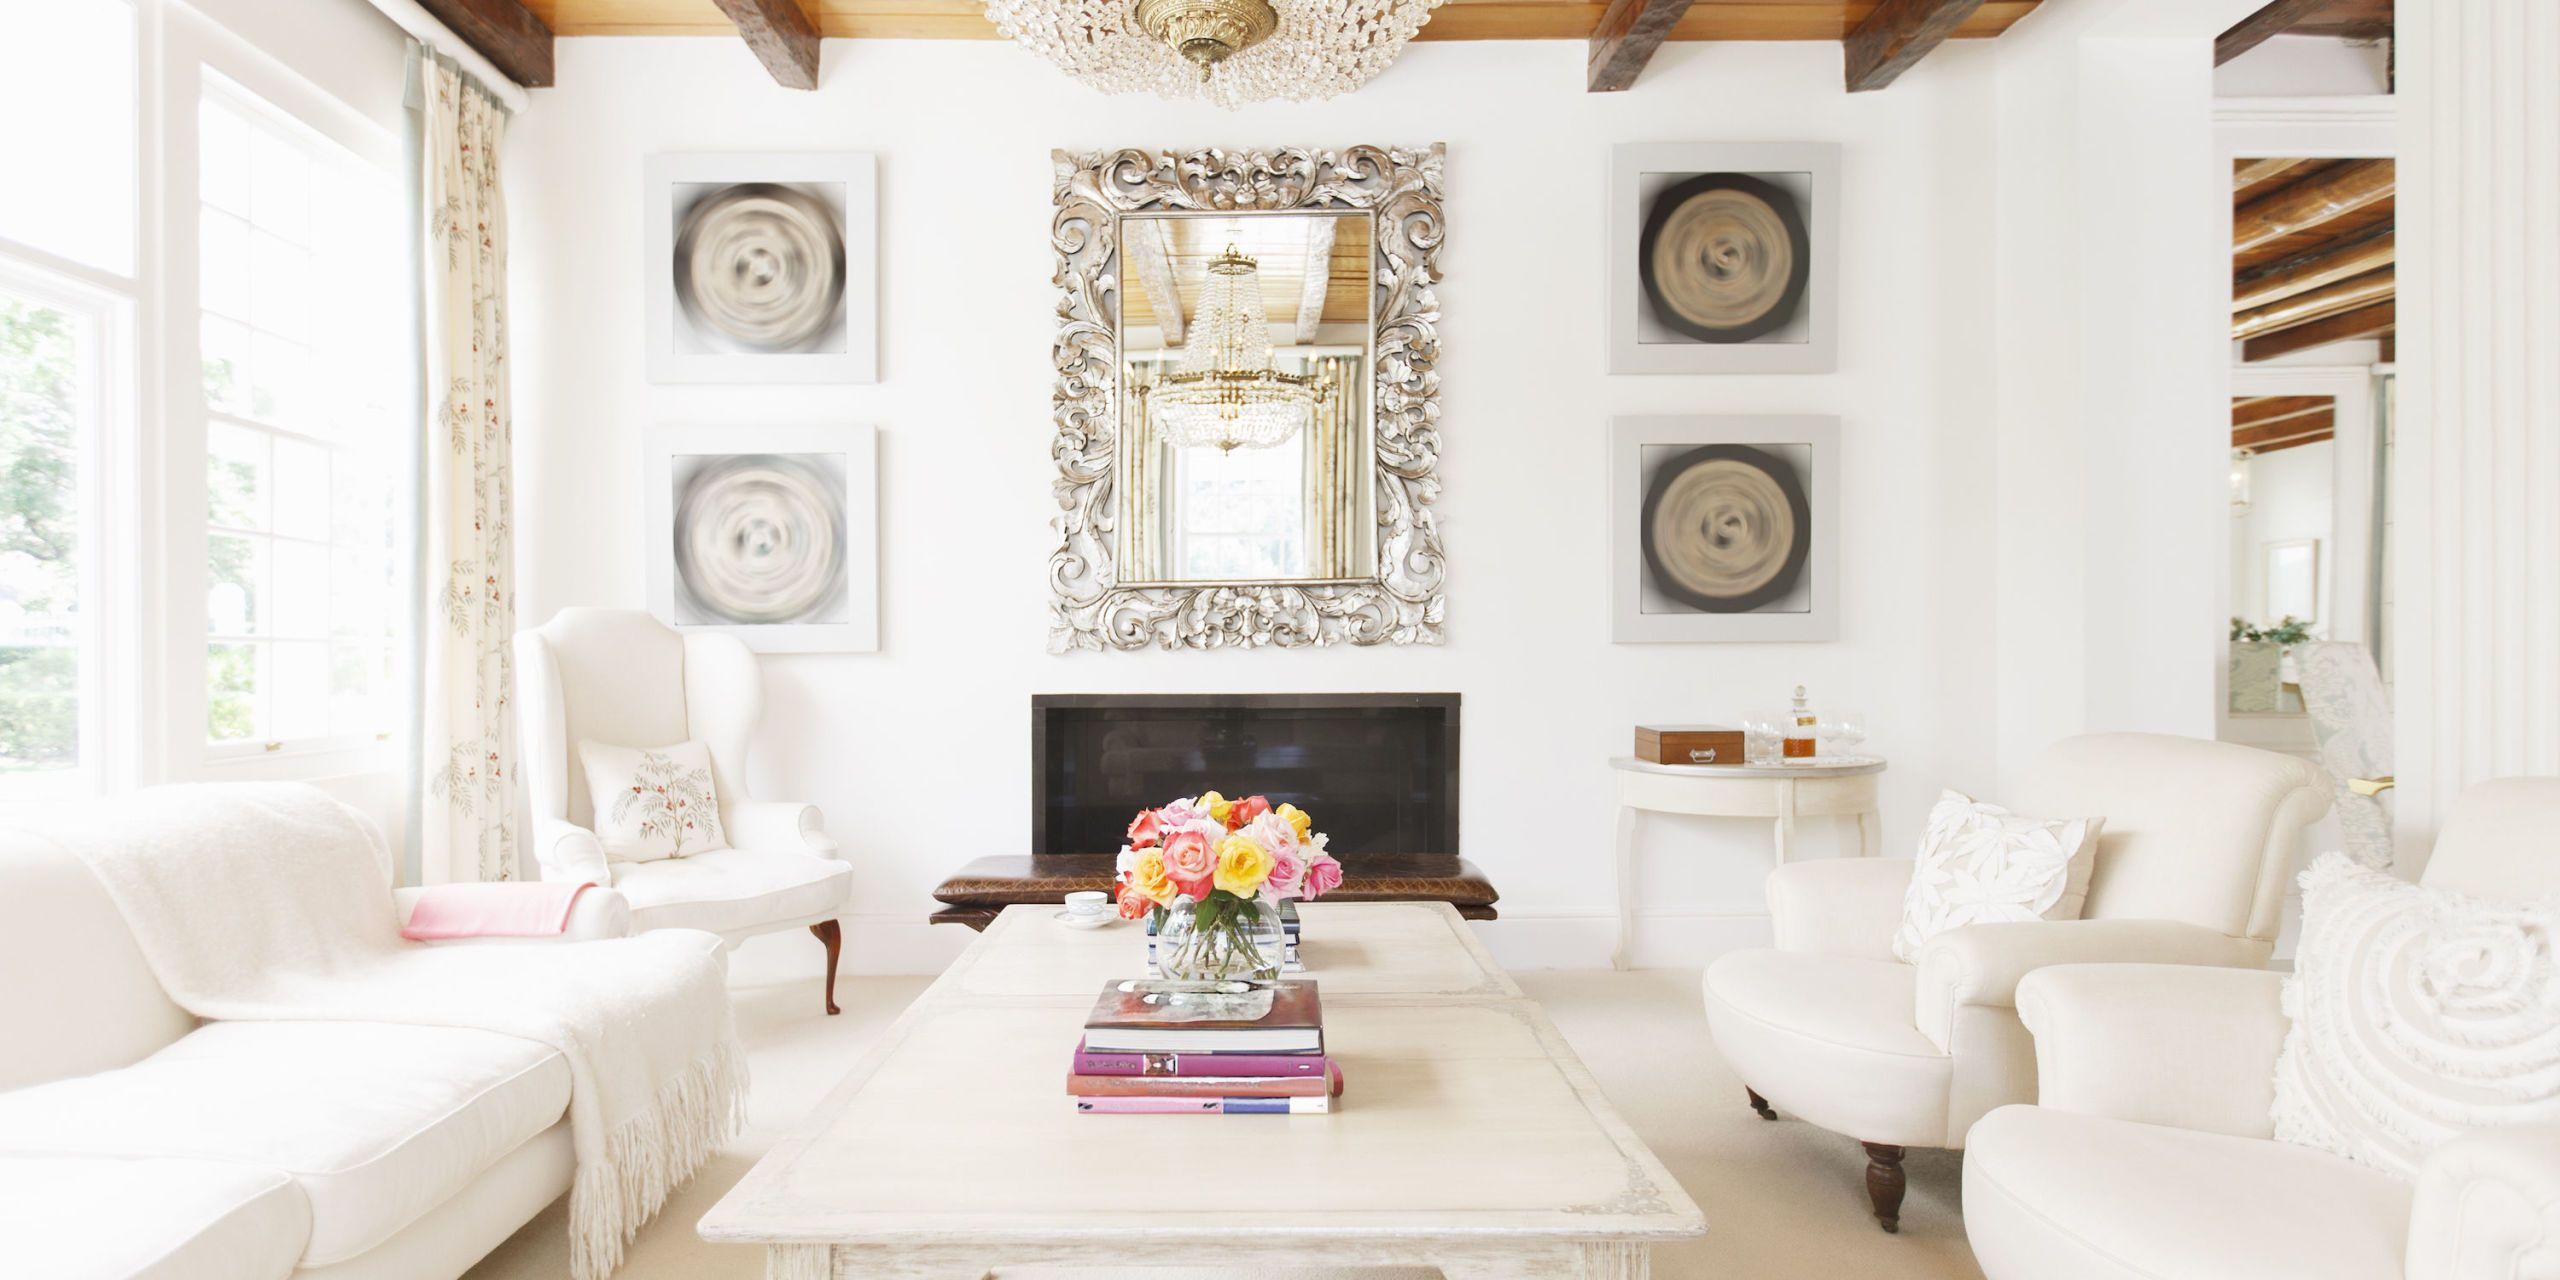 interior design. Getty Images. Interior designers weigh in on what designer jargon actually means ... & 20 Interior Design Terms Defined - Designer Jargon Explained